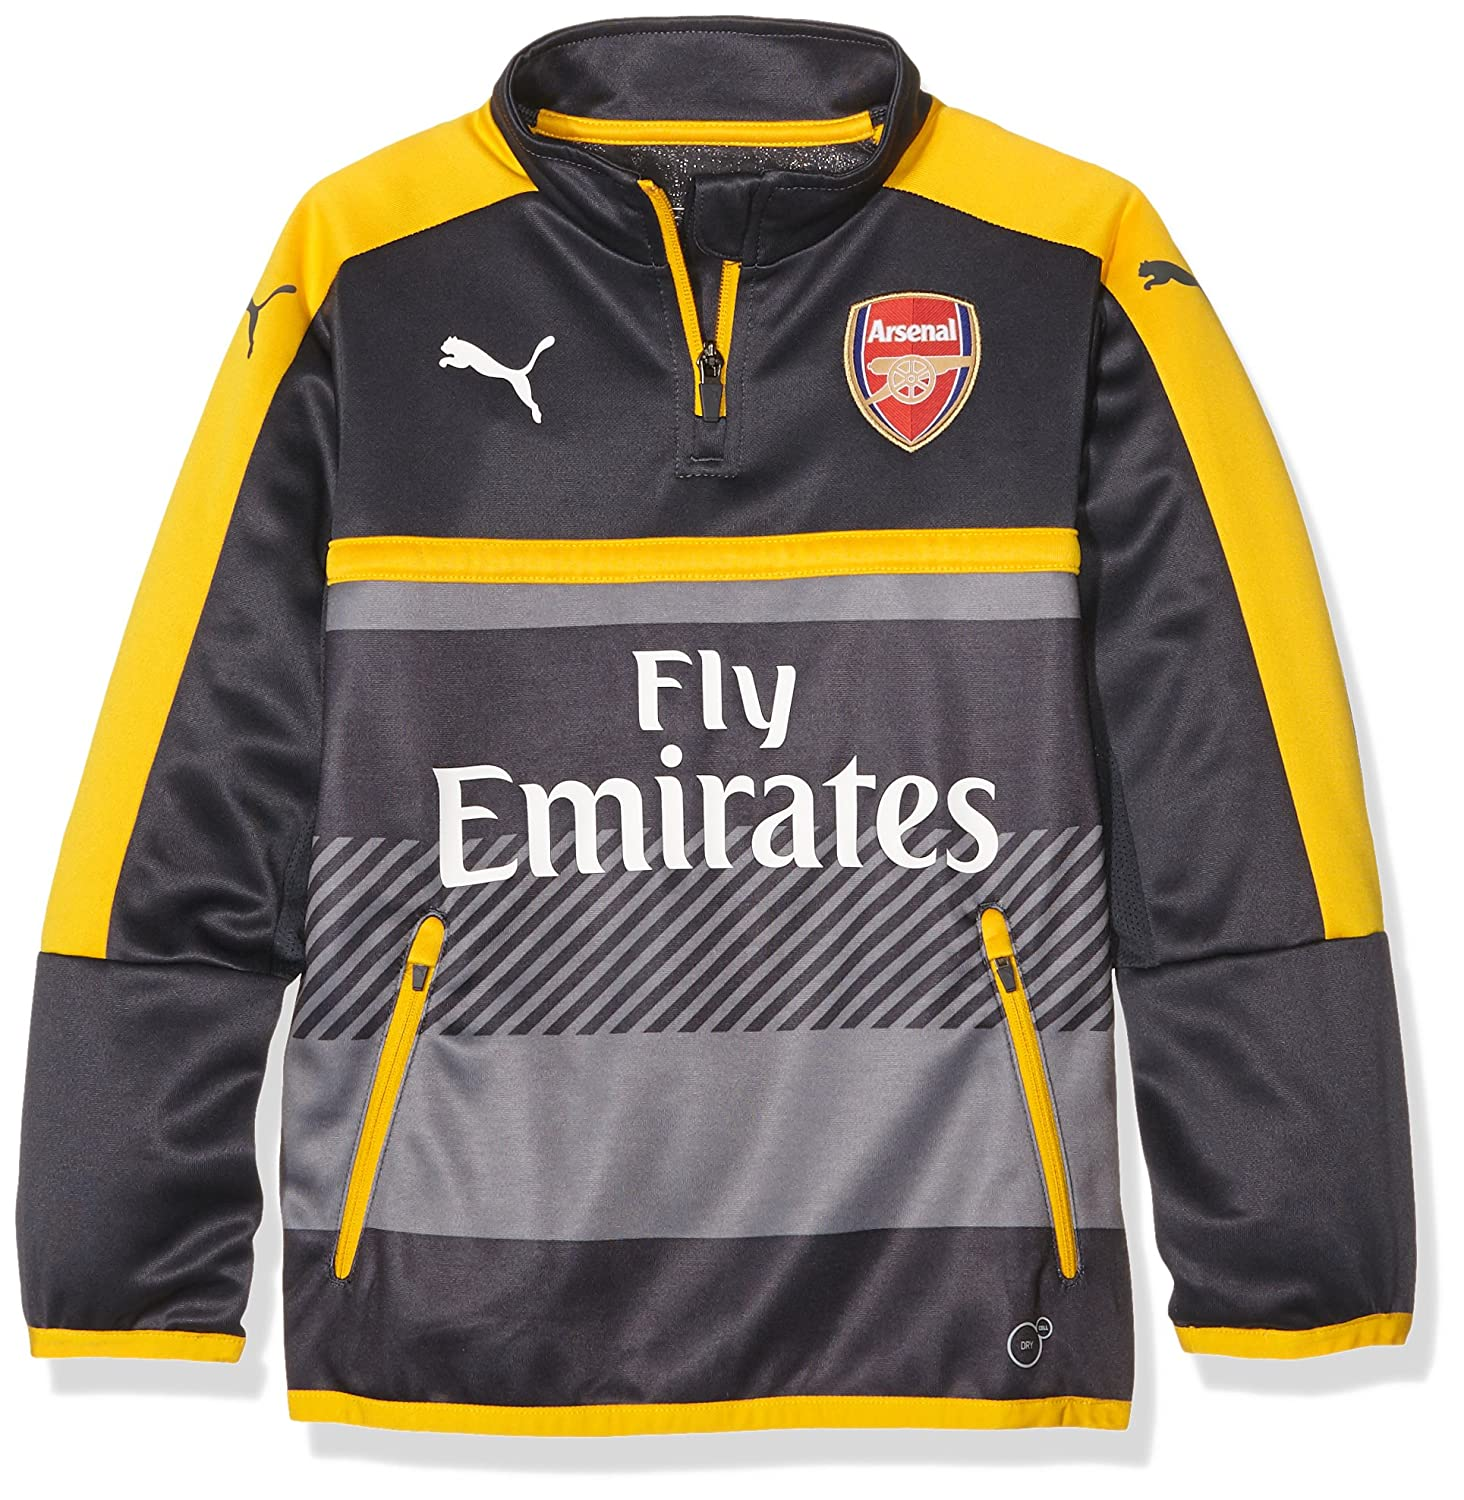 Puma Kinder Jacke AFC 1 4 Training Top-Sales with 2 Side Pockets Zip